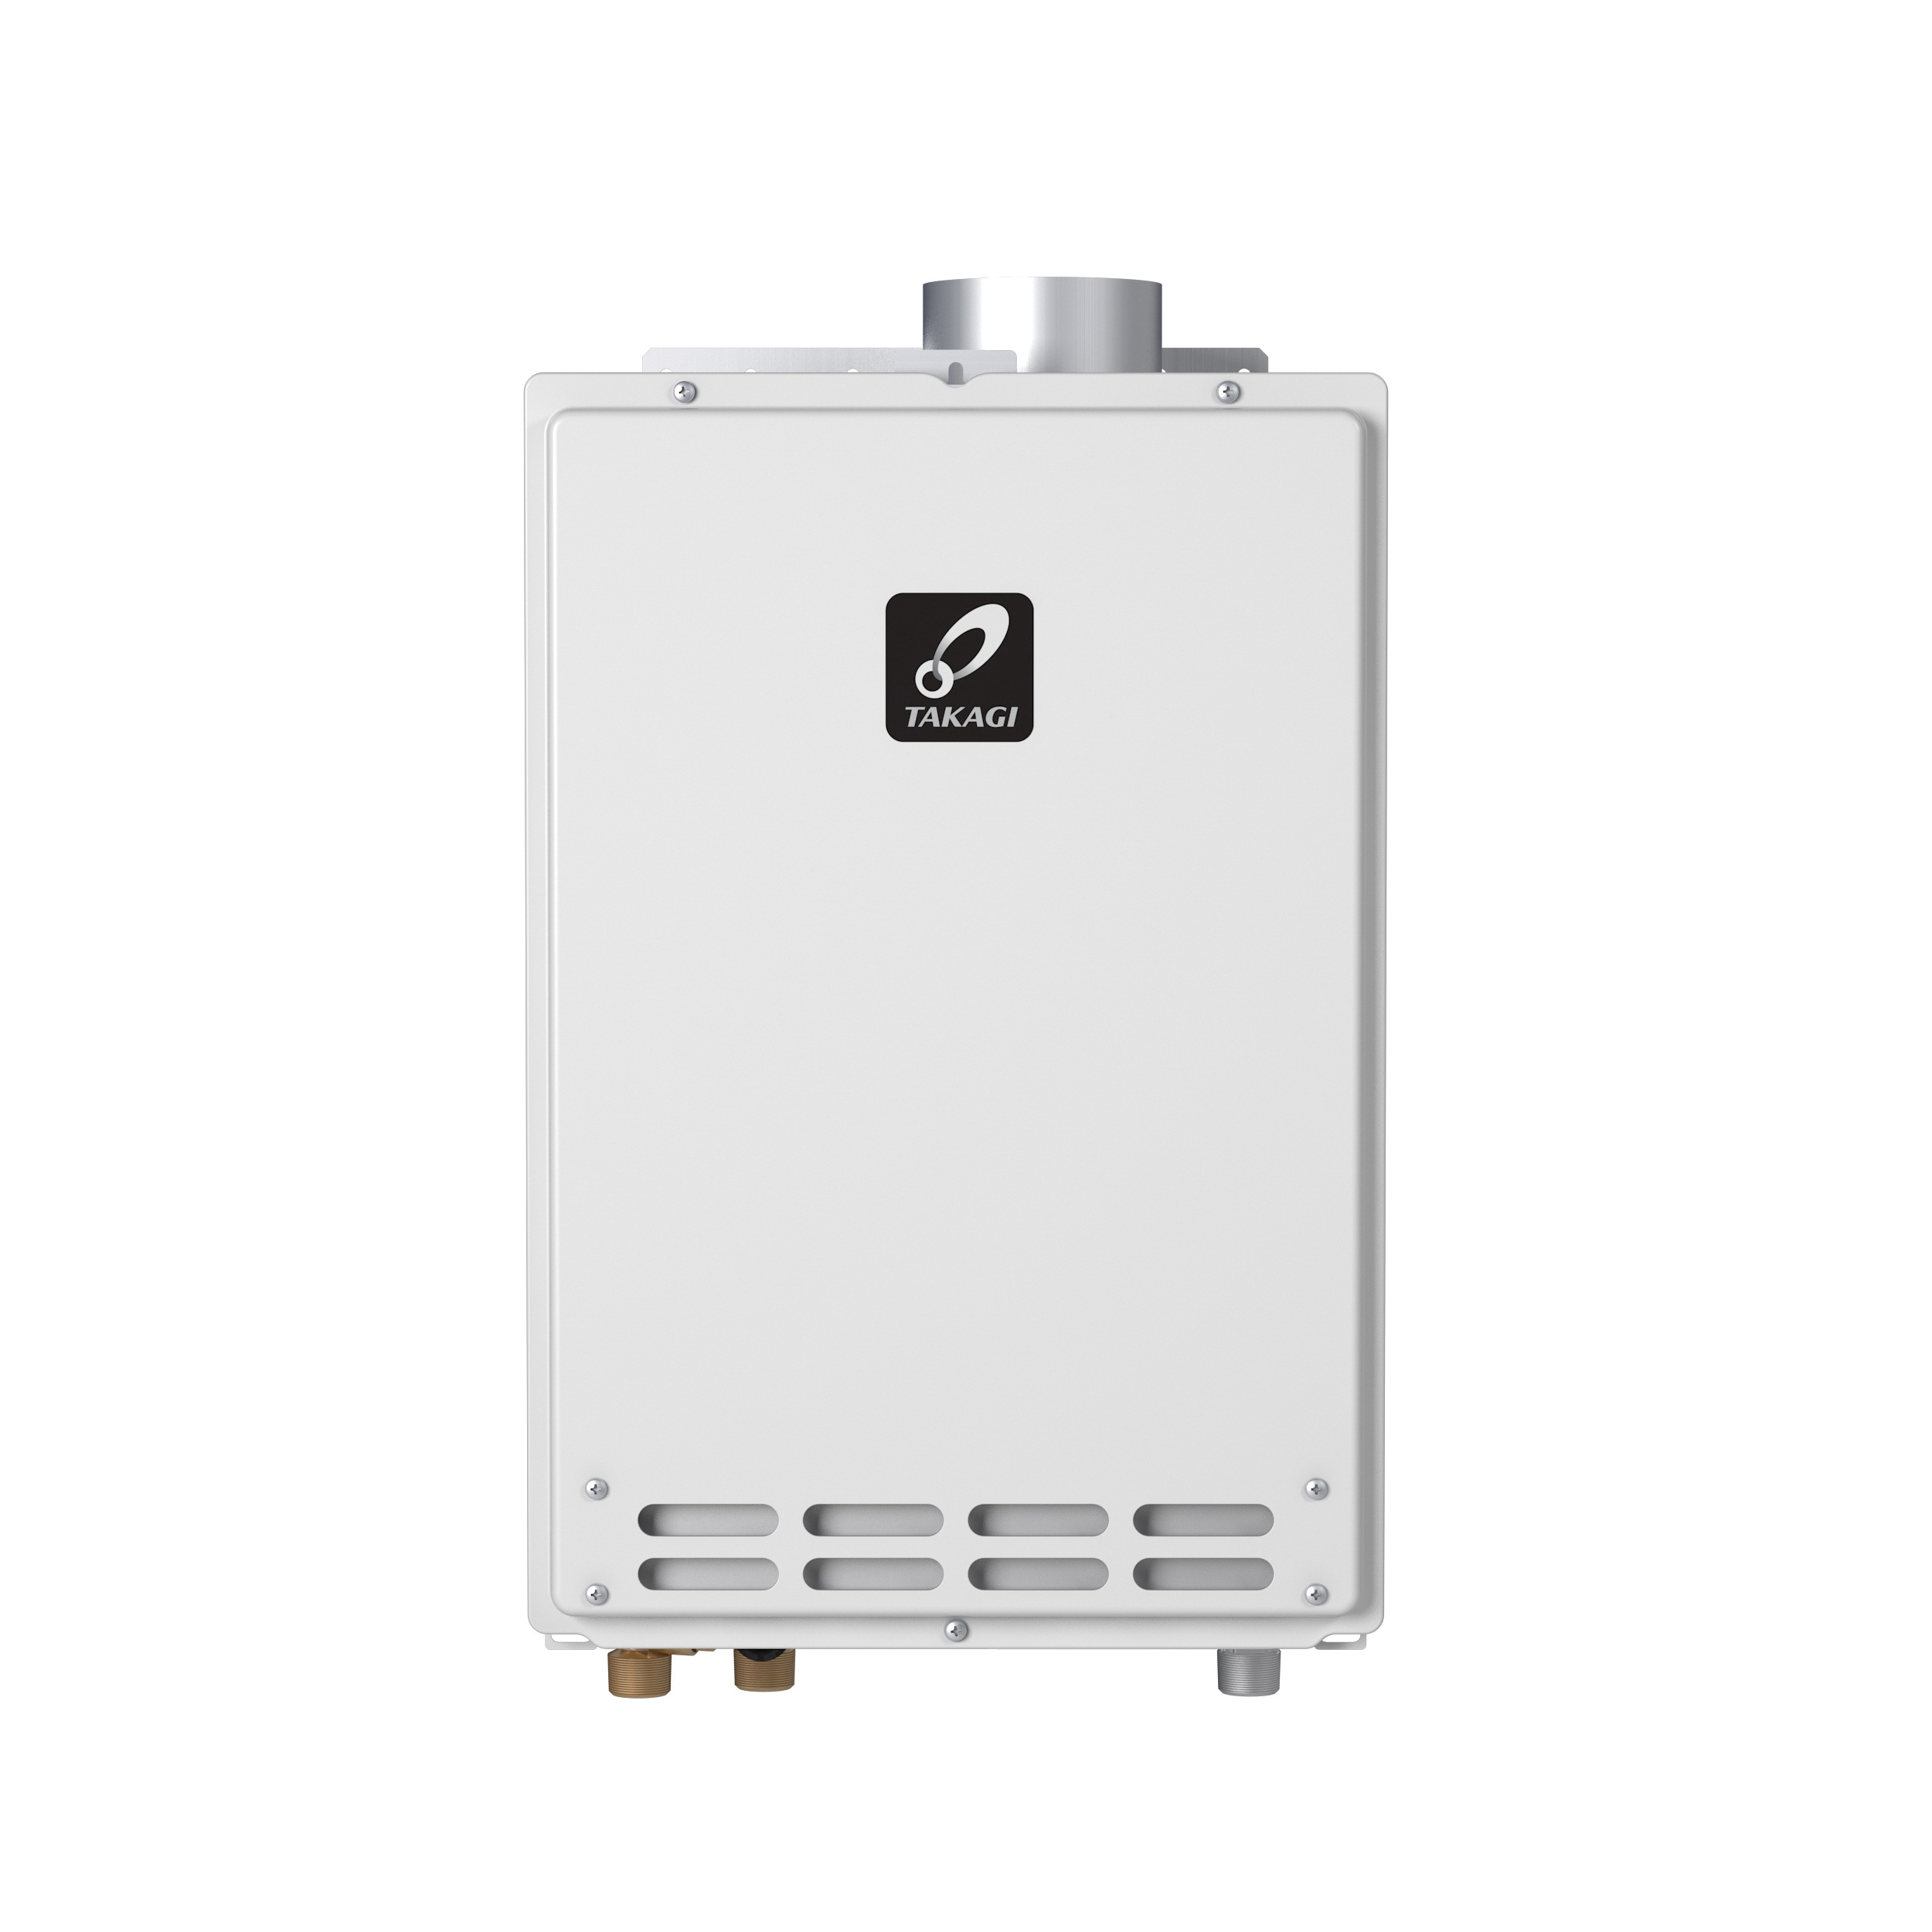 Takagi 100123265 K4 Tankless Water Heater, Natural Gas, 190000 Btu/hr Heating, Indoor, Non-Condensing, 8 gpm, 4 in, 0.8 Energy Factor, Commercial/Residential/Dual: Dual, Ultra Low NOx: No